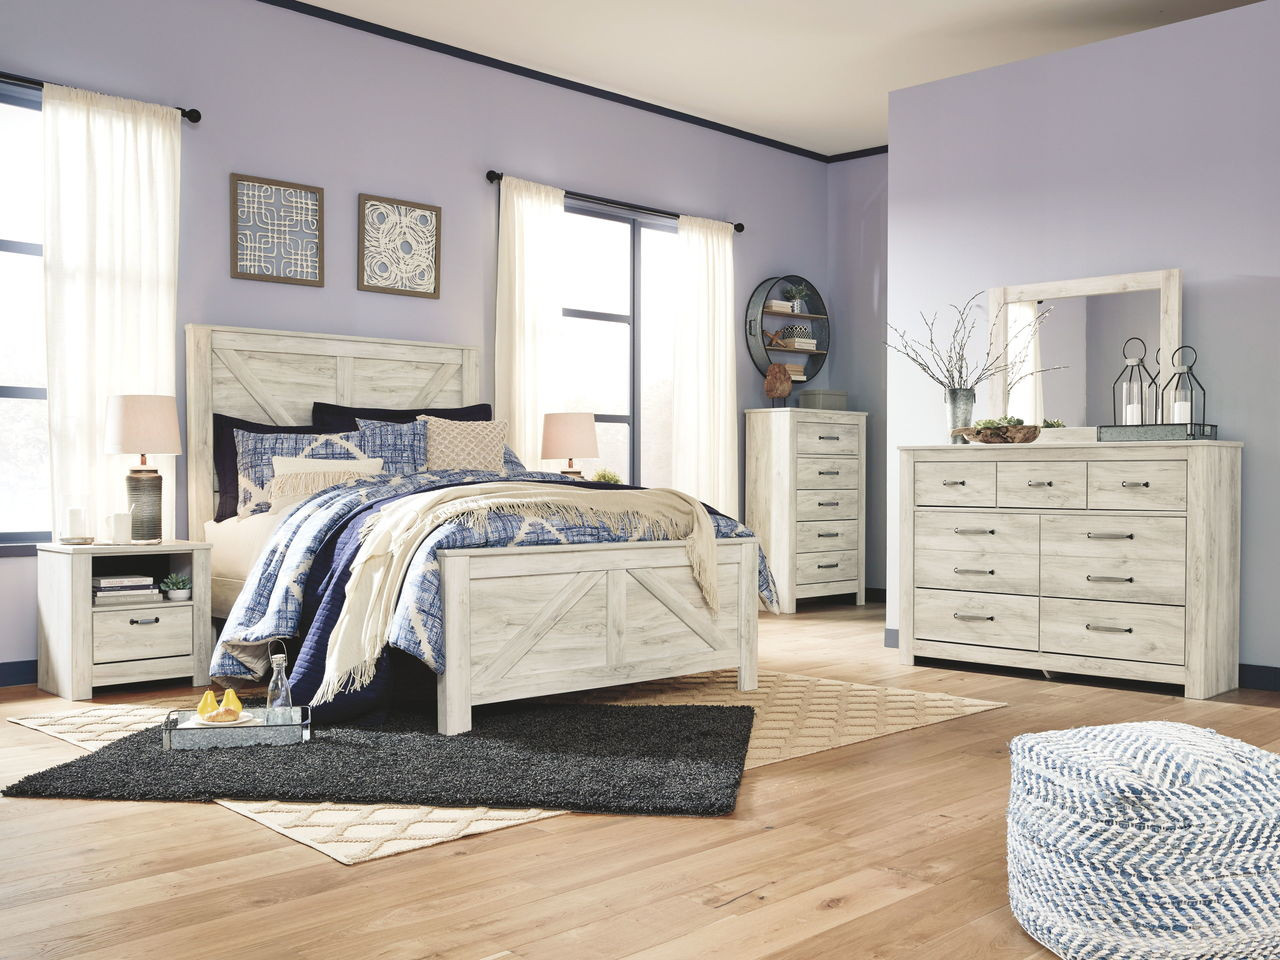 Picture of: The Ashley Bellaby Whitewash Queen Panel Bed Available At Furniture Connection Serving Clarksville Tennessee And Ft Campbell Kentucky